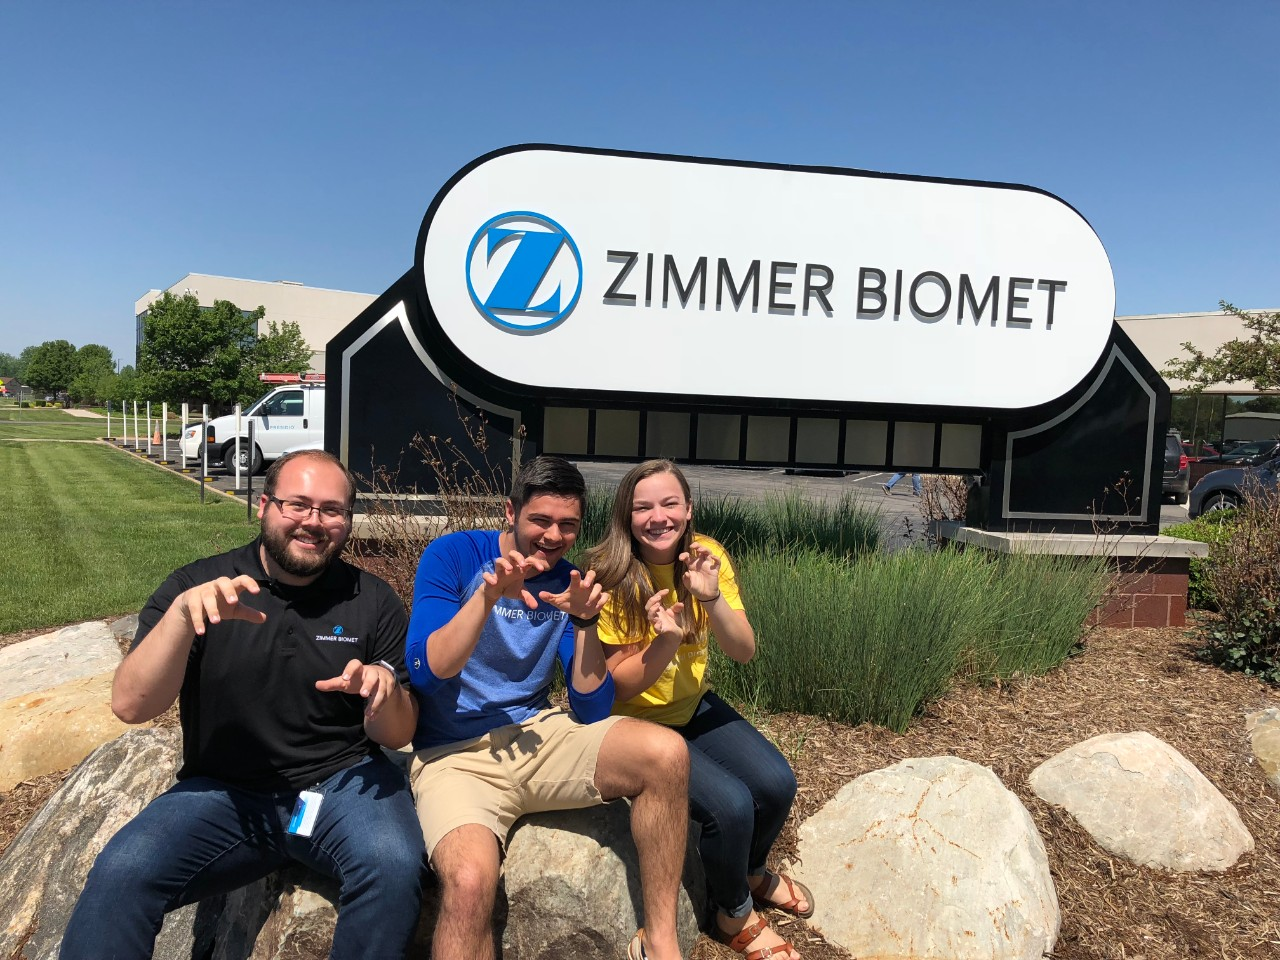 Goodwin and two friends in front of Zimmer Biomet sign outside.